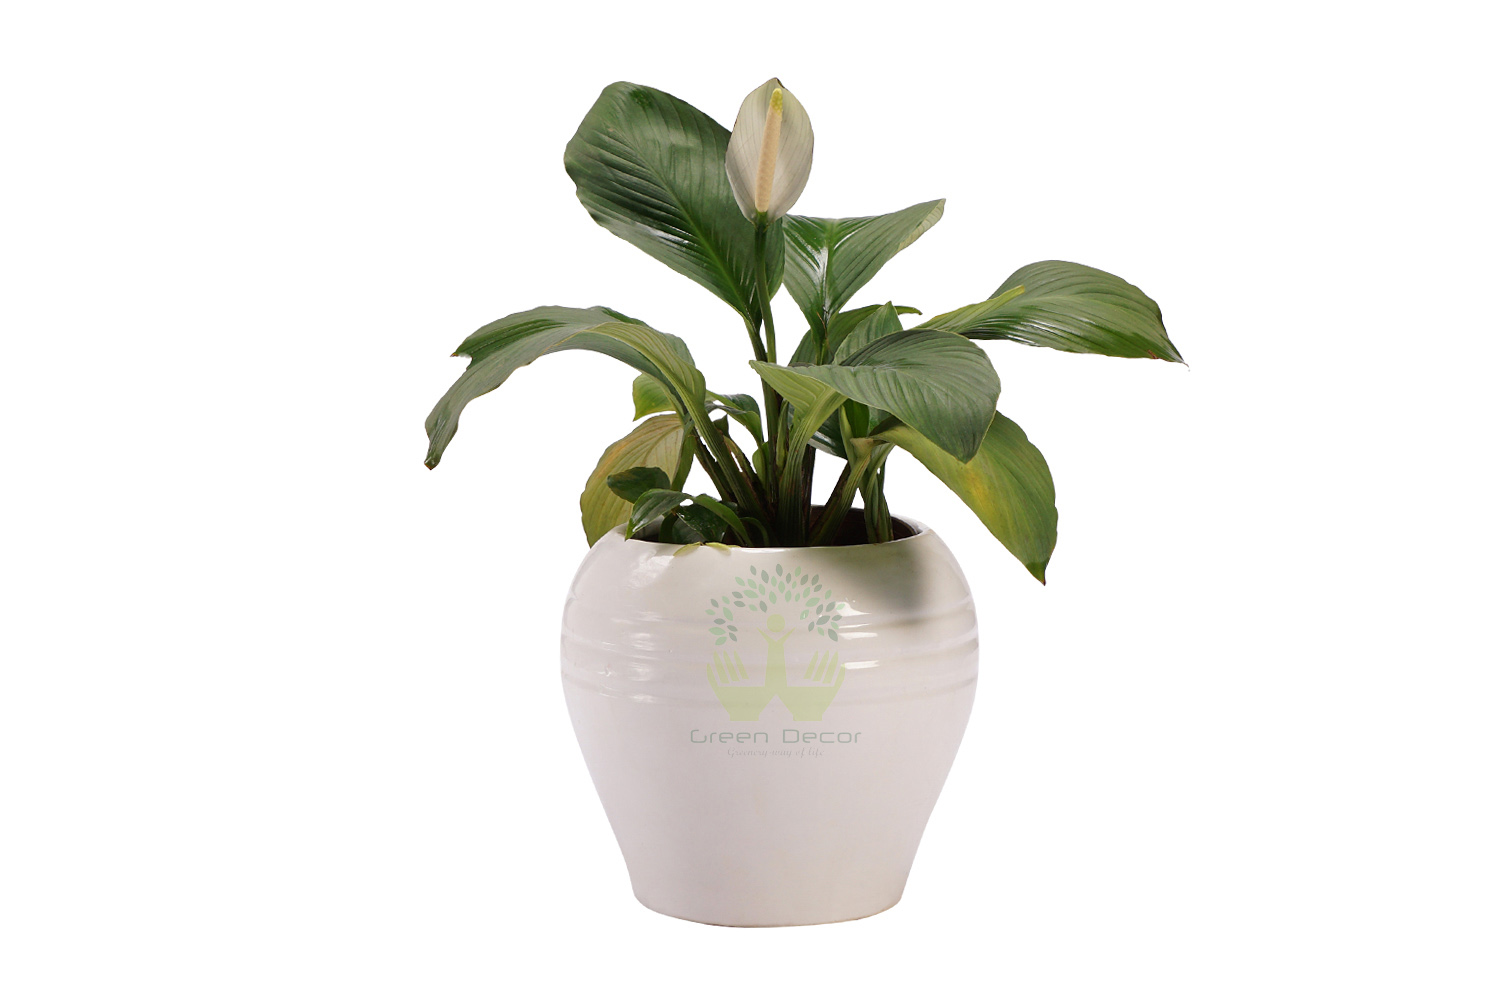 Buy Peace Lily Plants,pots and seeds in Delhi NCR by the best online nursery shop Greendecor.